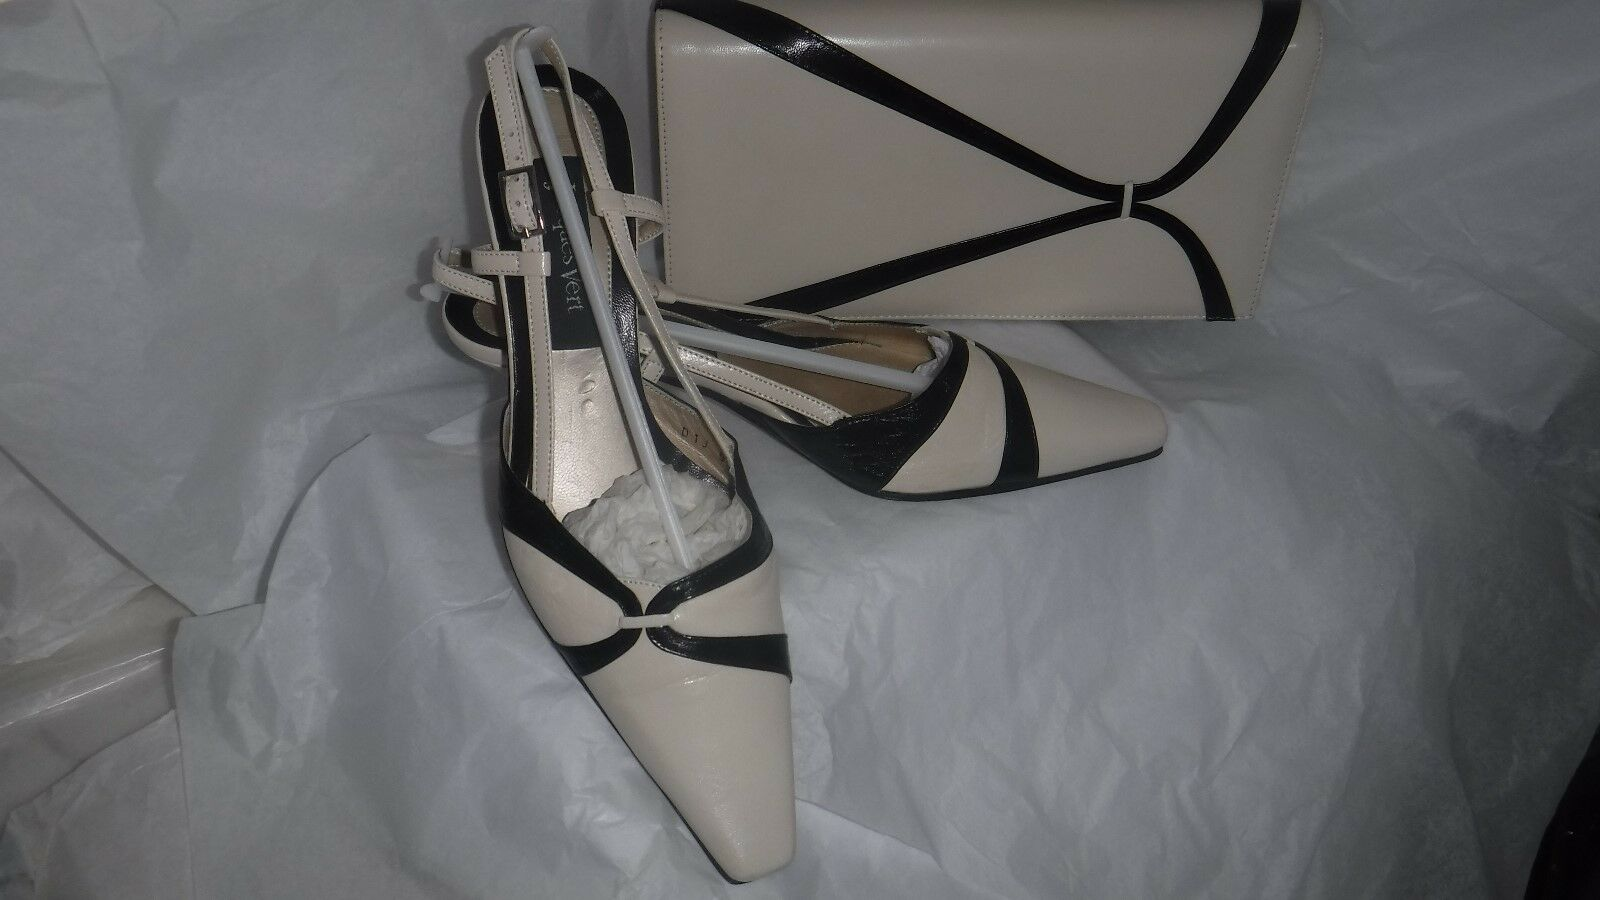 # JACQUES VERT POWDER PUFF RANGE Schuhe & MATCHING CLUTCH BAG SIZE 4 EU 37